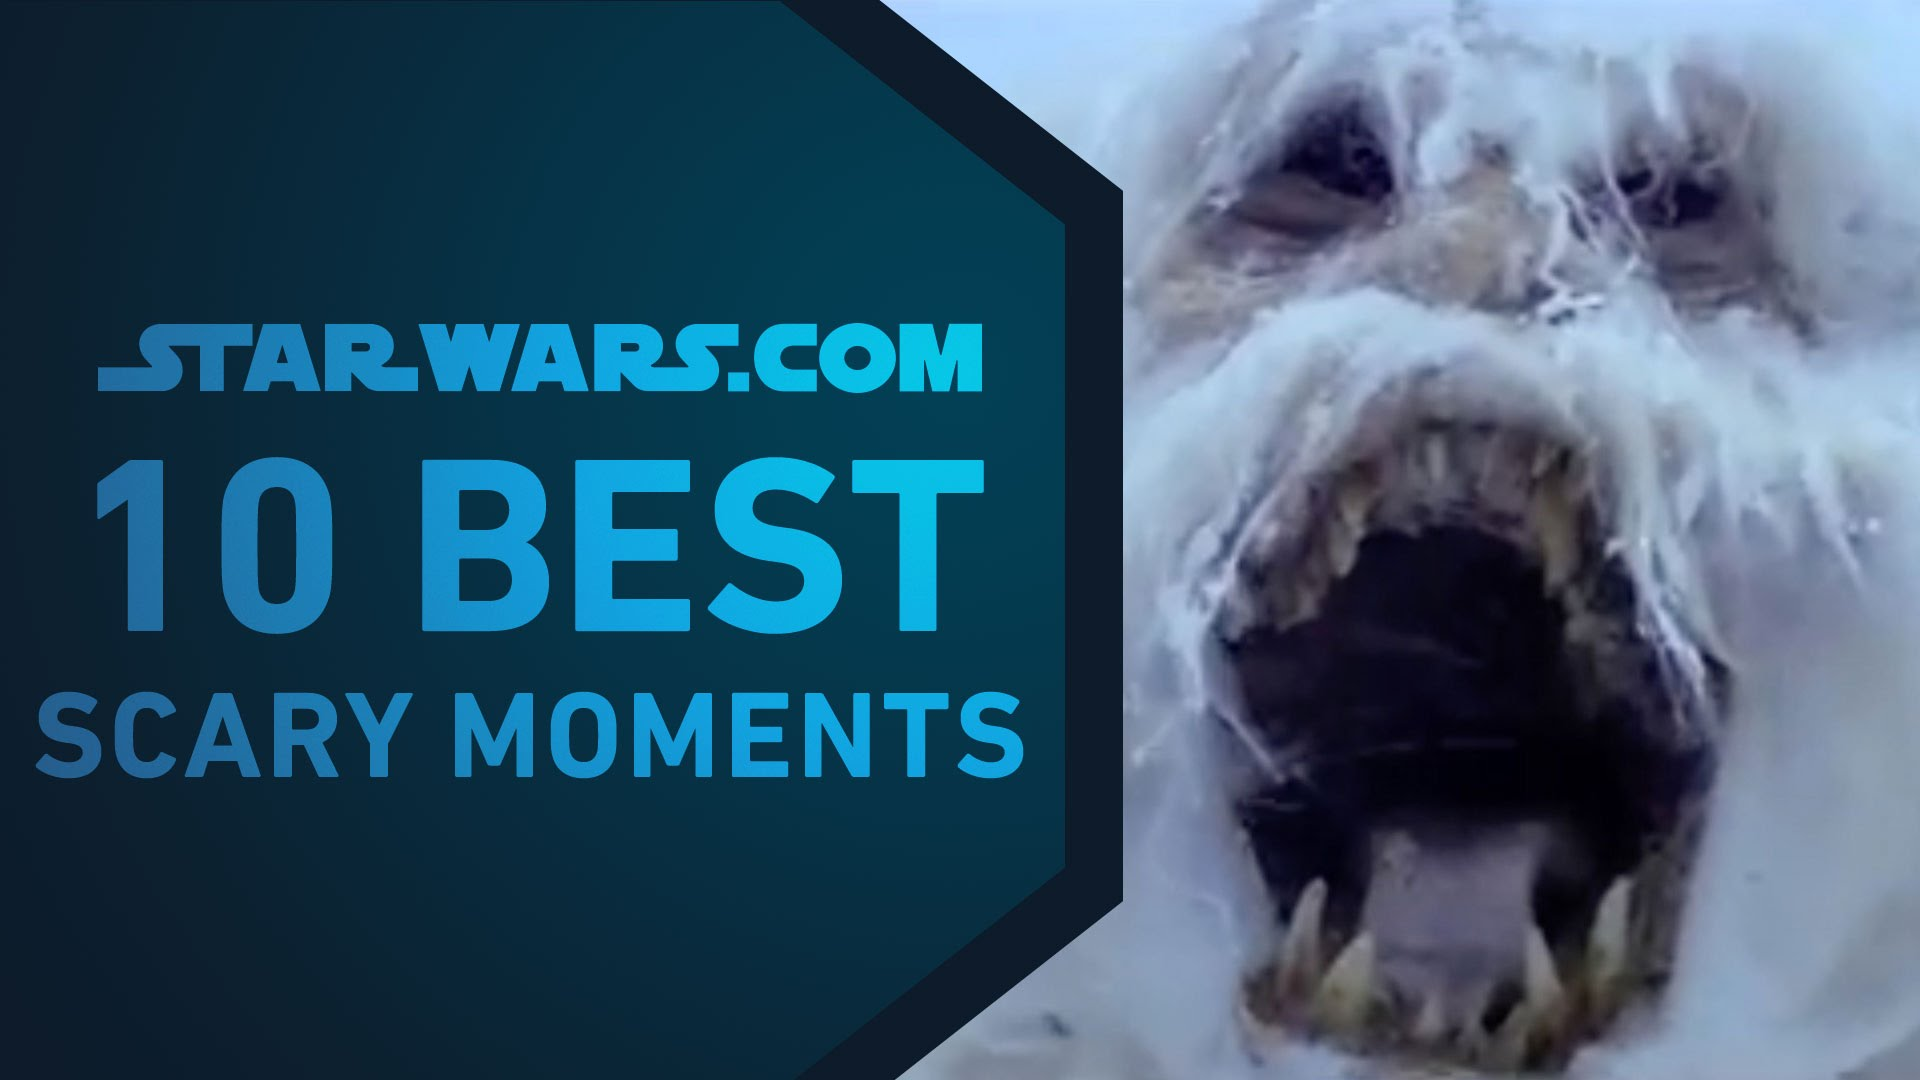 Best Star Wars Scary Moments | The StarWars.com 10